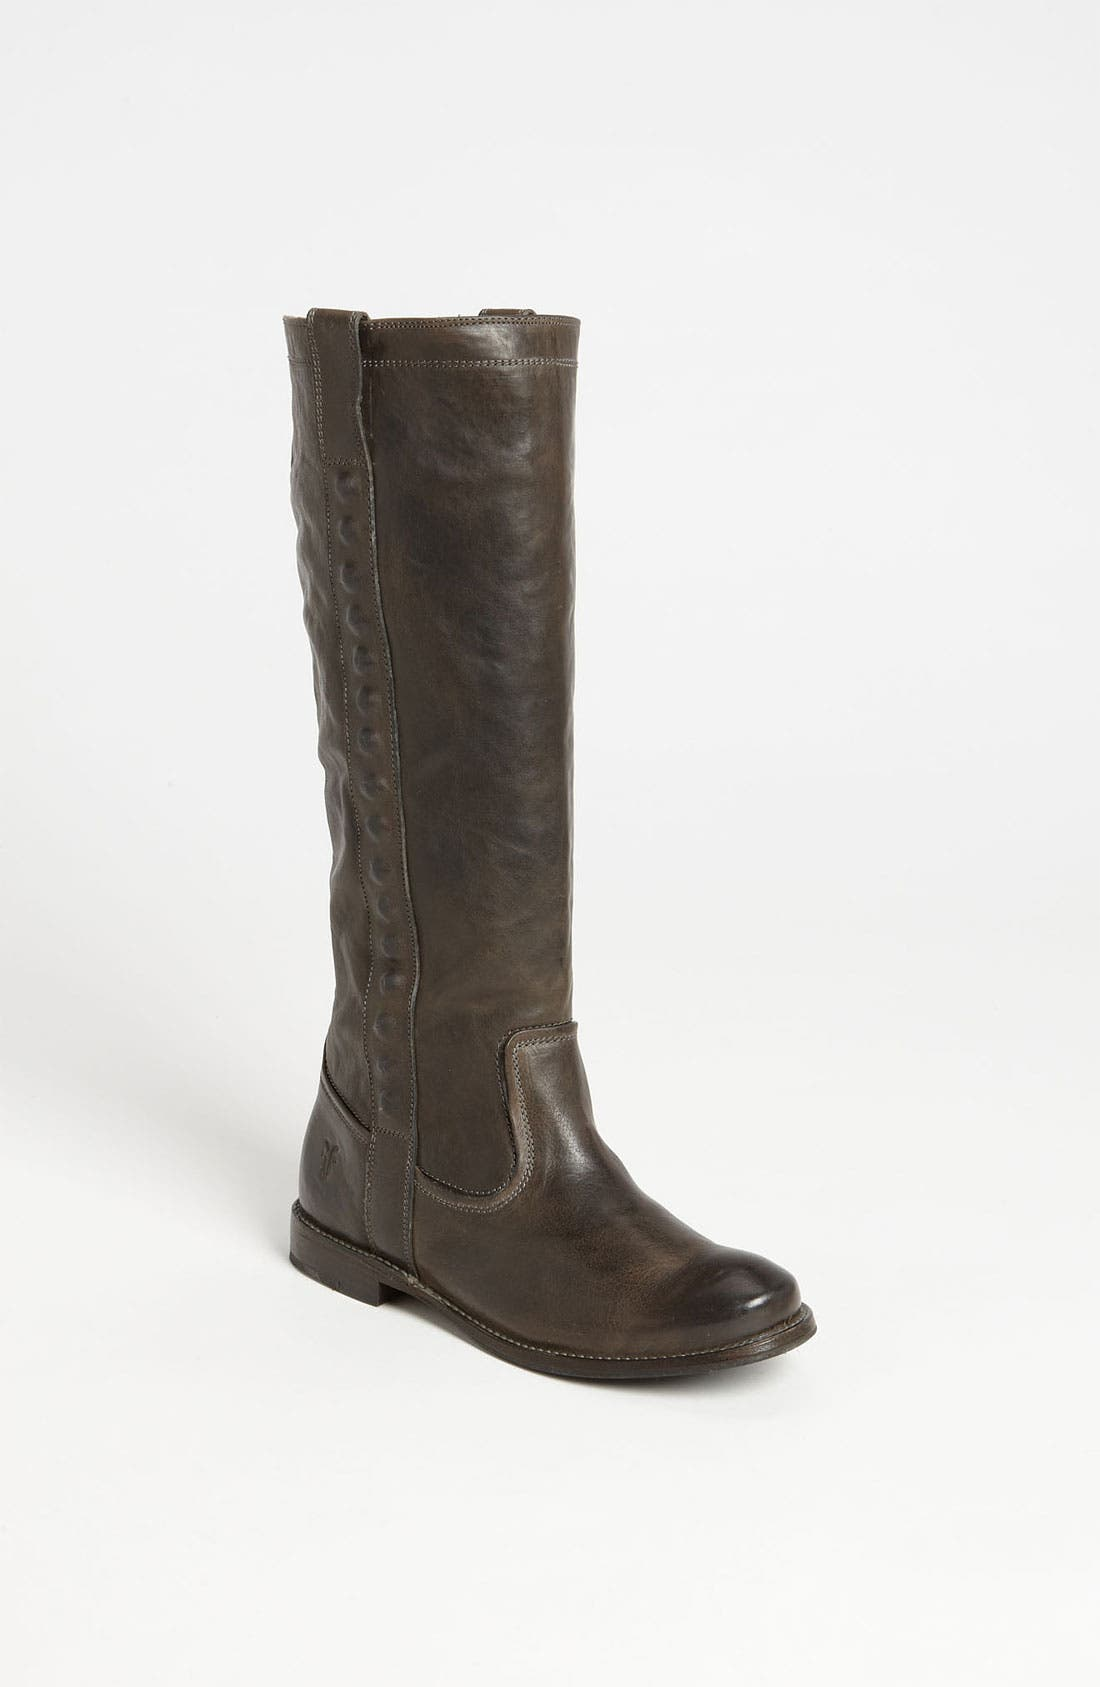 Alternate Image 1 Selected - Frye 'Paige Stud' Boot